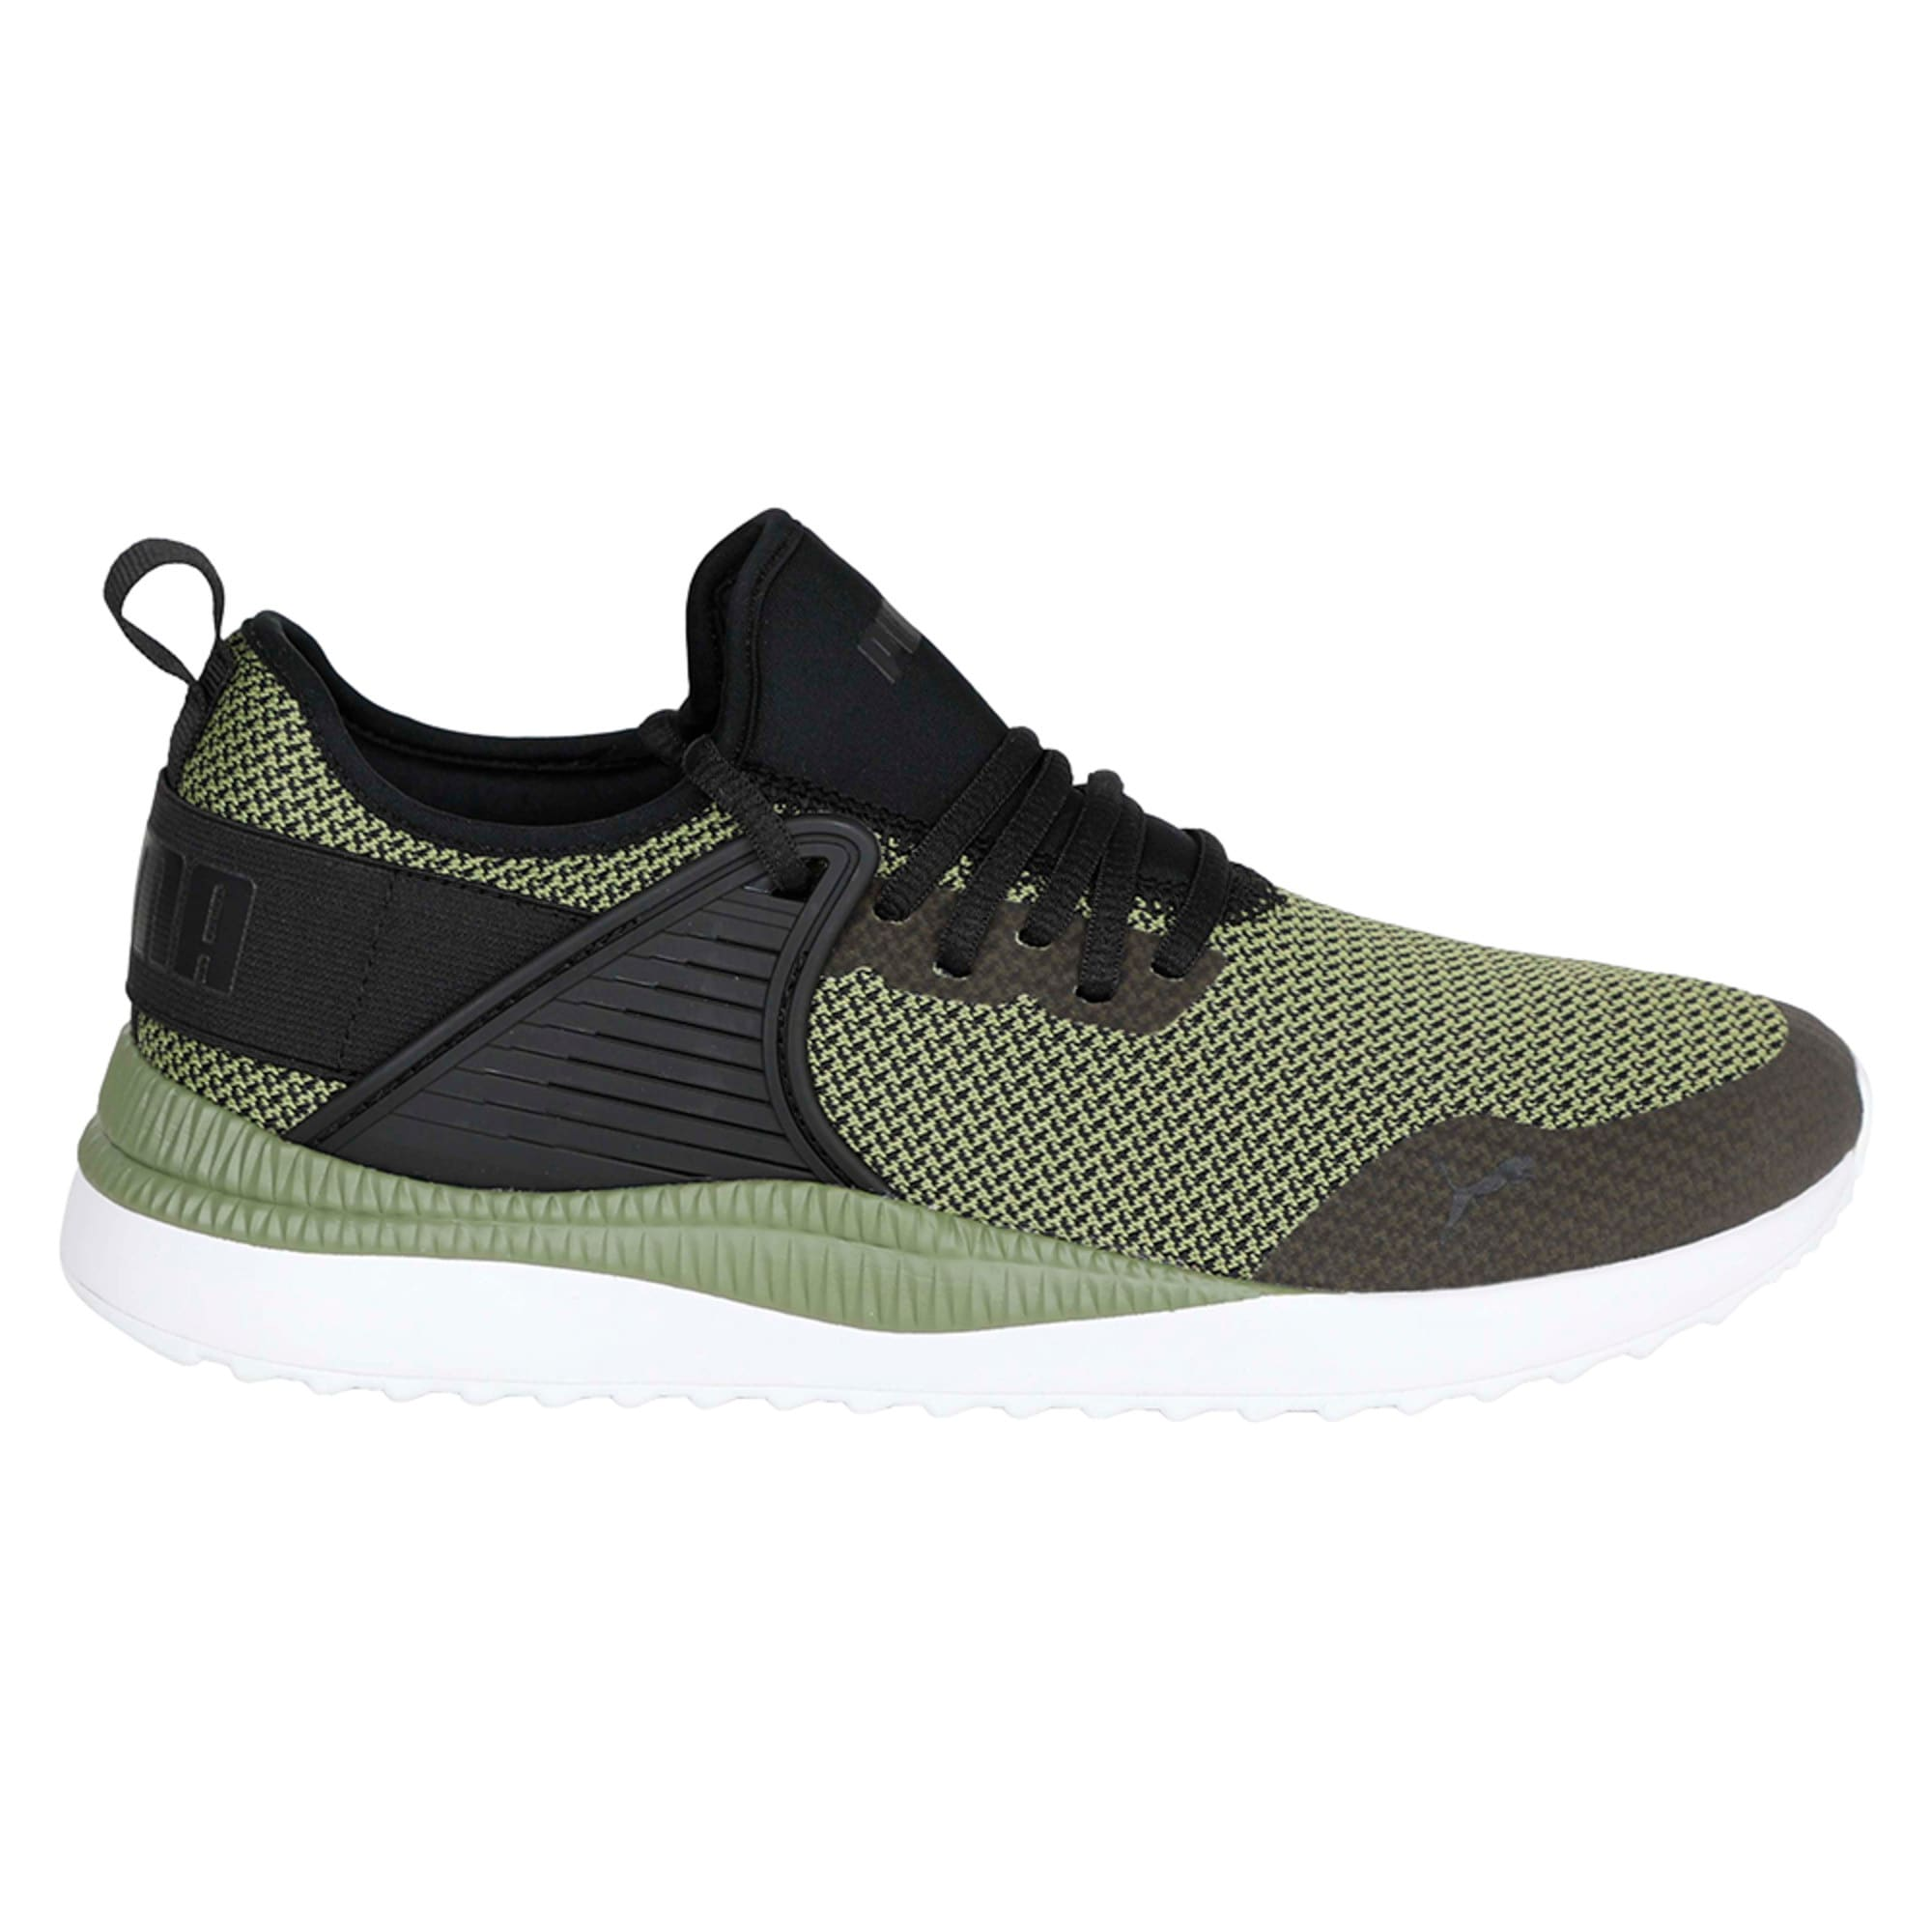 Thumbnail 5 of Pacer Next Cage GK Trainers, Puma Black-Capulet Olive, medium-IND